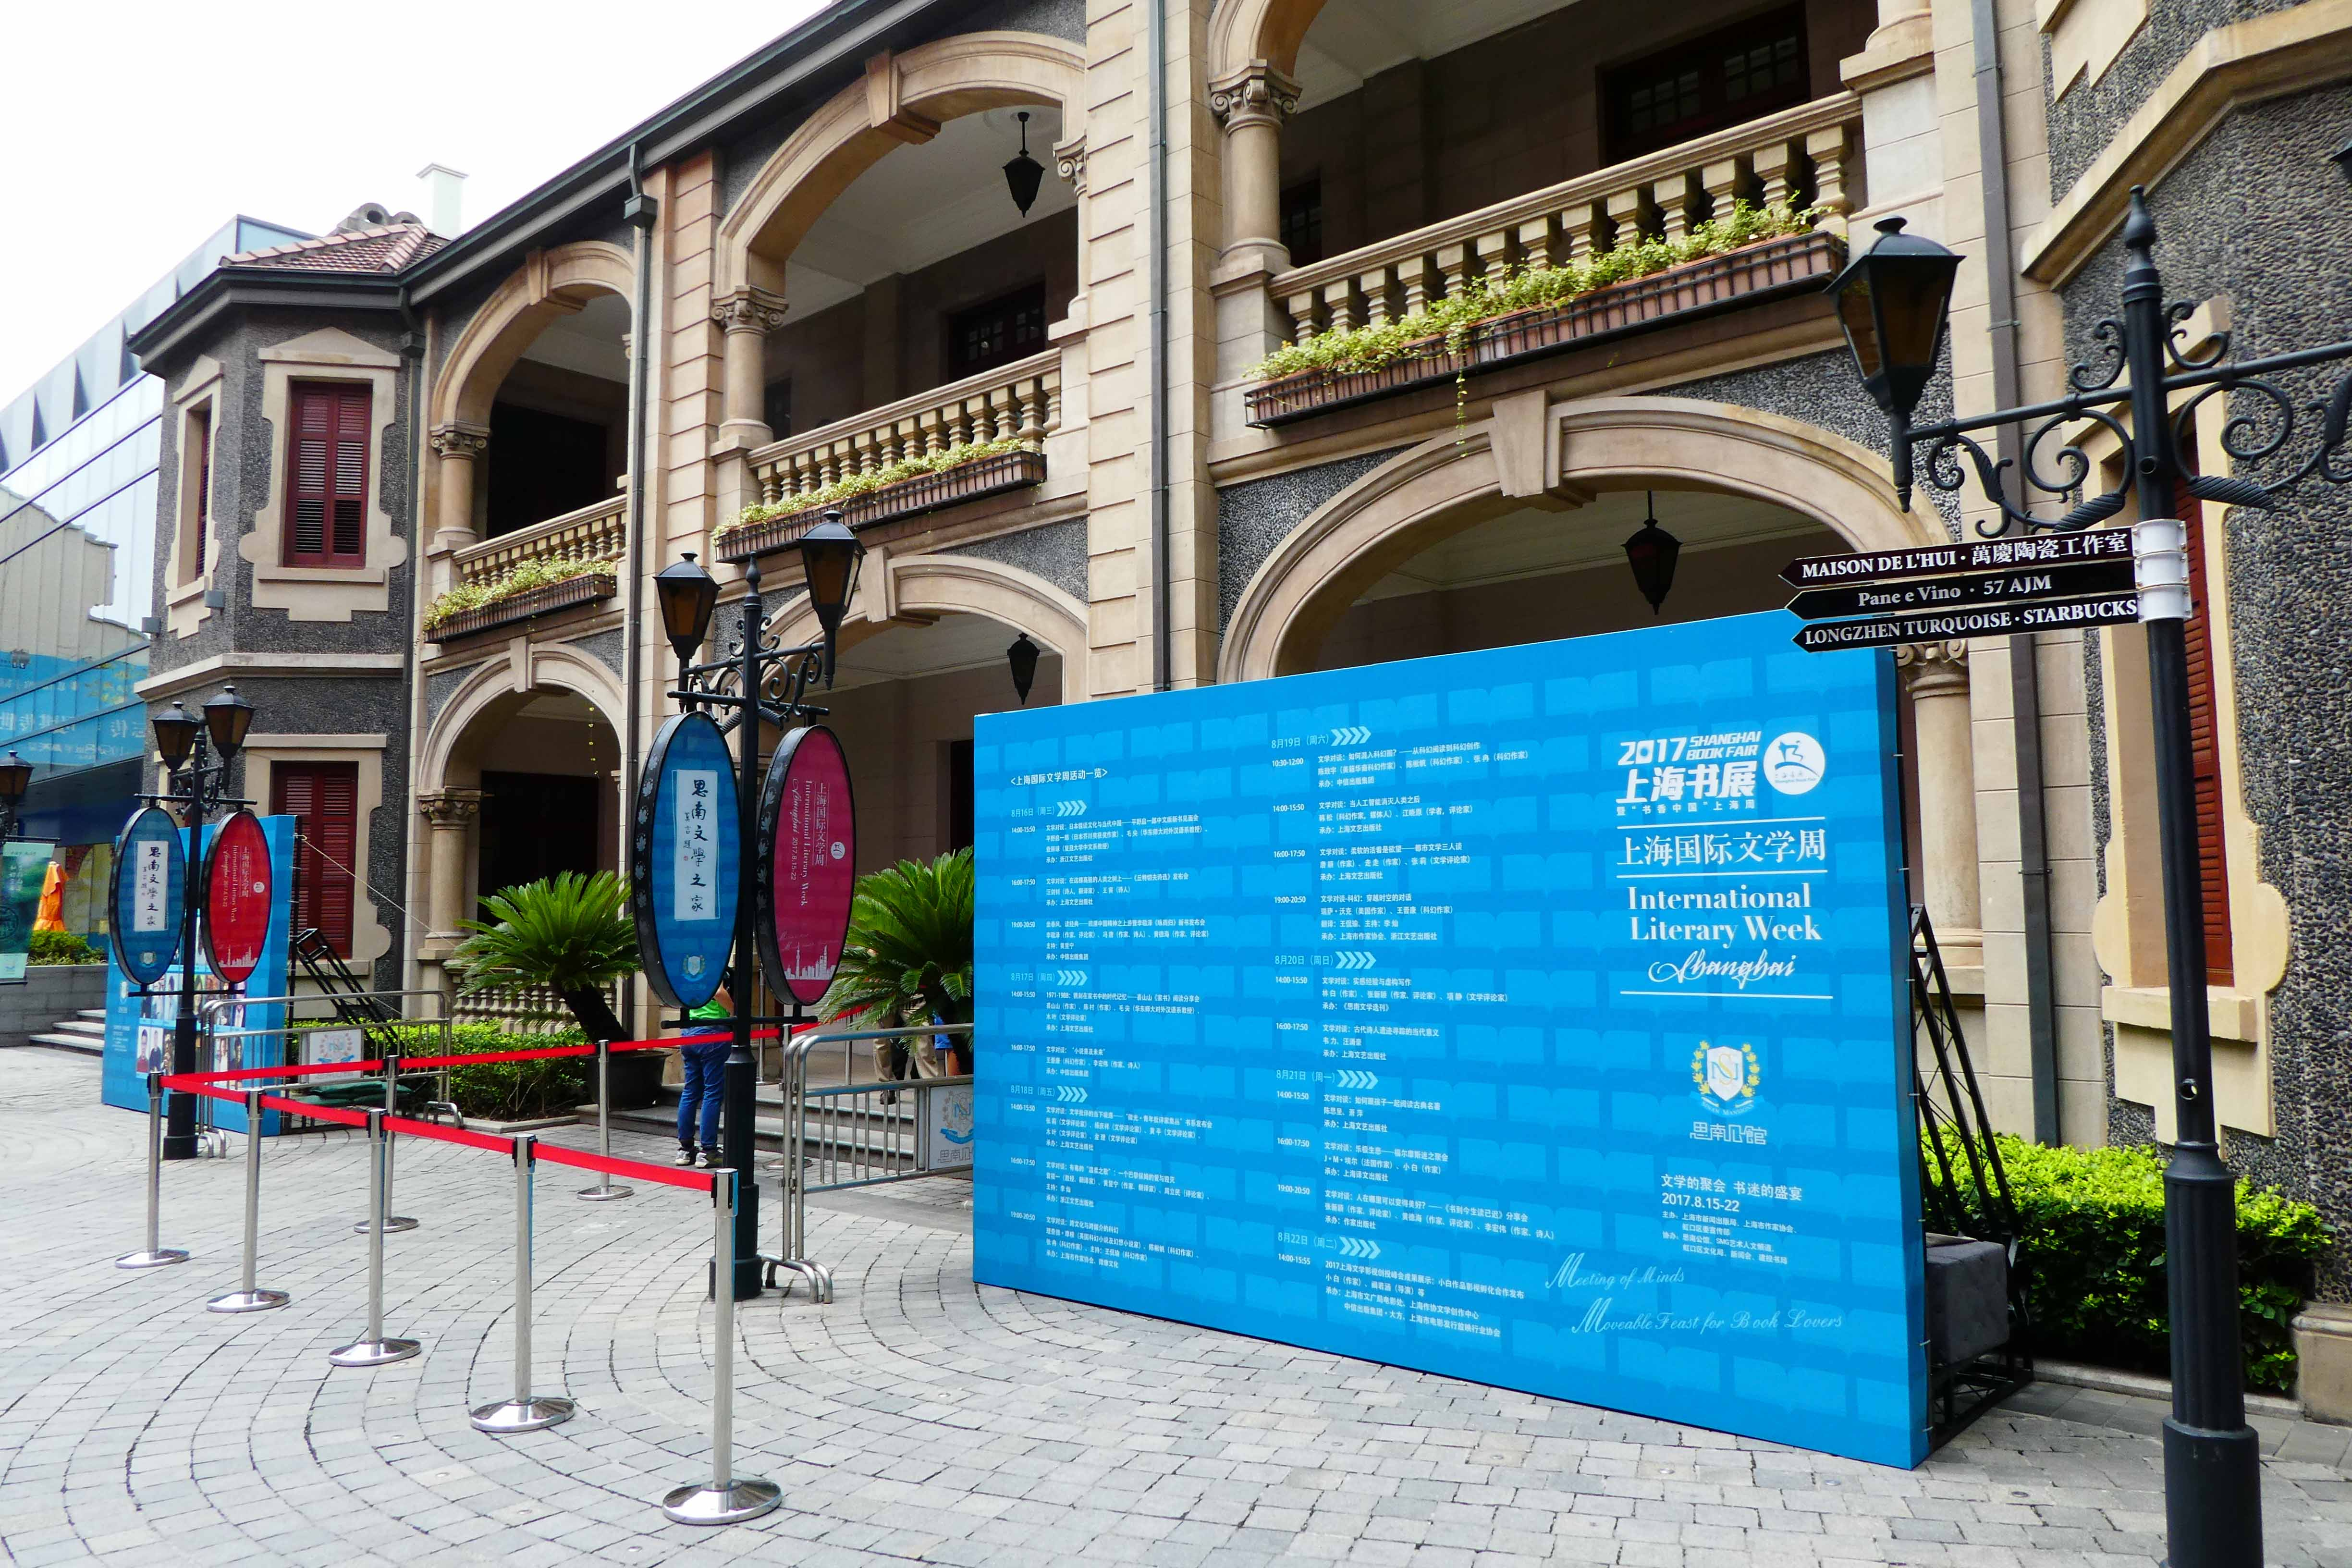 Sinan House of Literature, where many renowned writers have given talks before, was among the event locations for the Shanghai International Literary Week